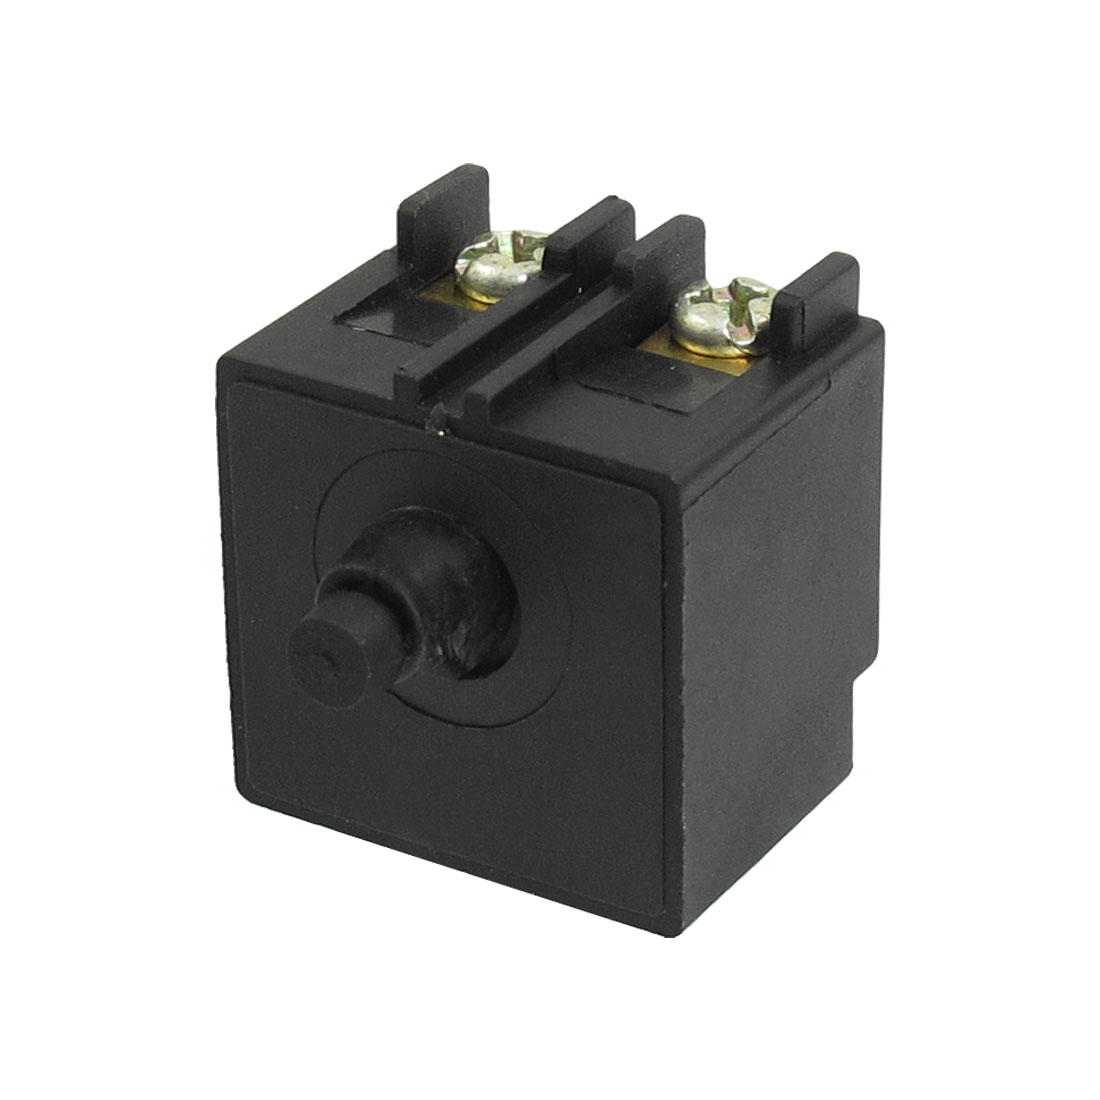 AC 250V 4A DPST NO Momentary Trigger Switch for Makite 9556NB Angle Grinder